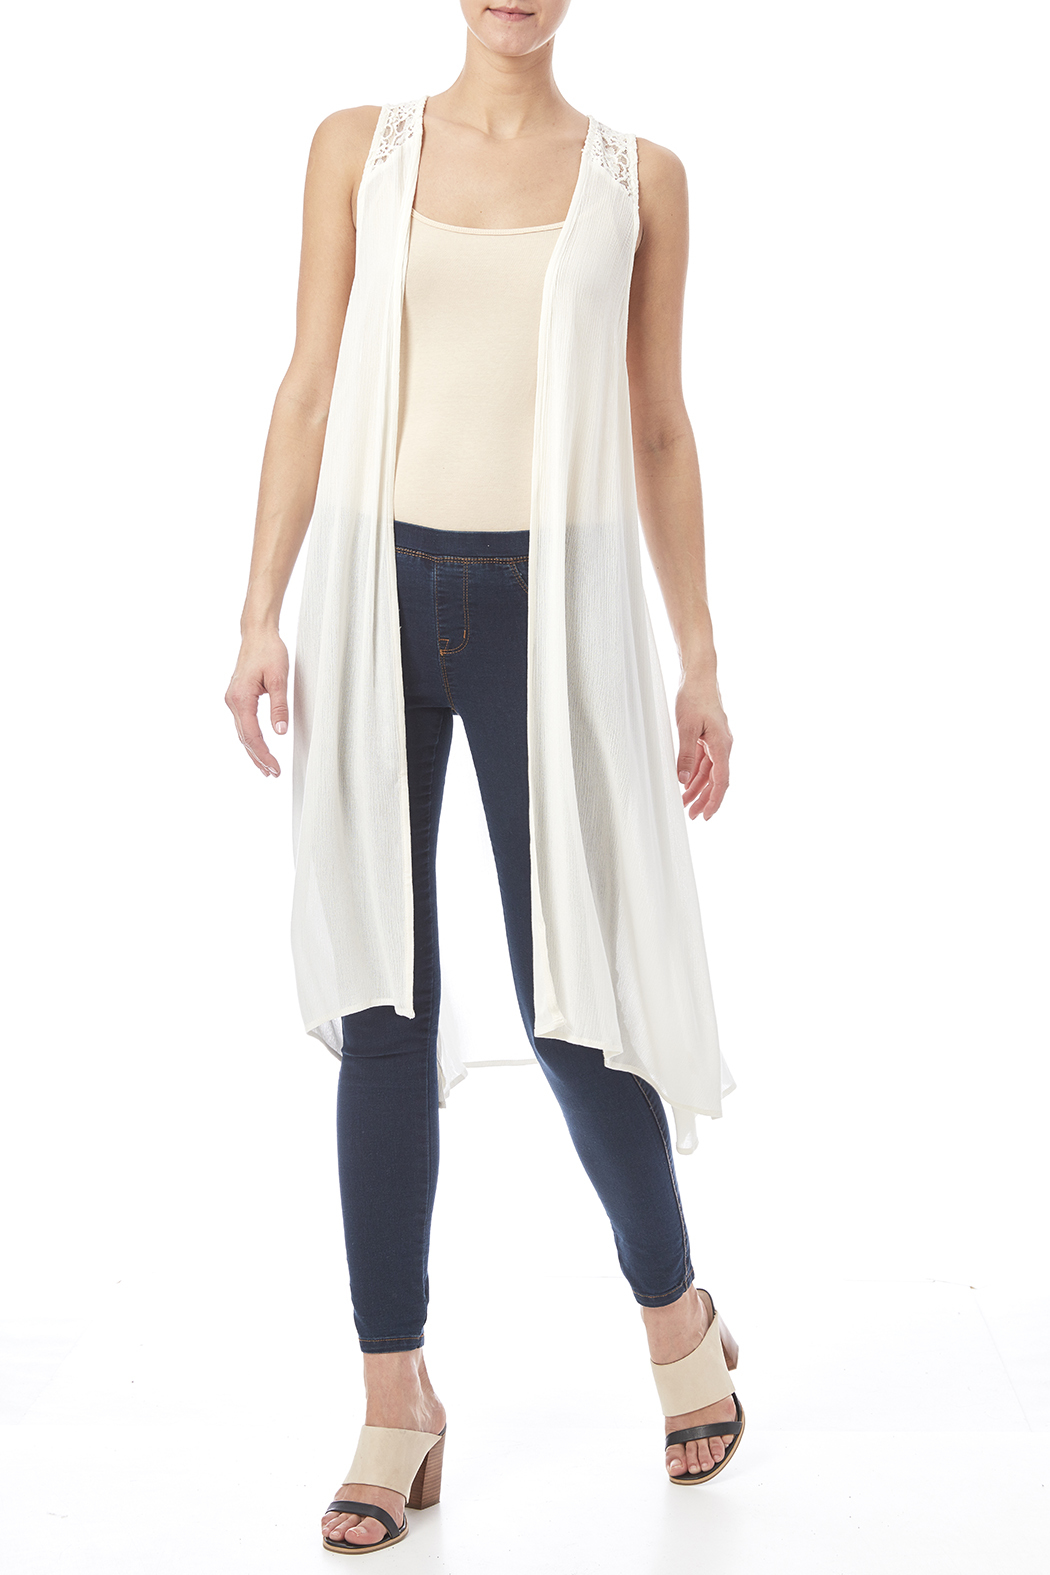 Mystree WhiteSheer Sleeveless Cardigan from Oregon by ...